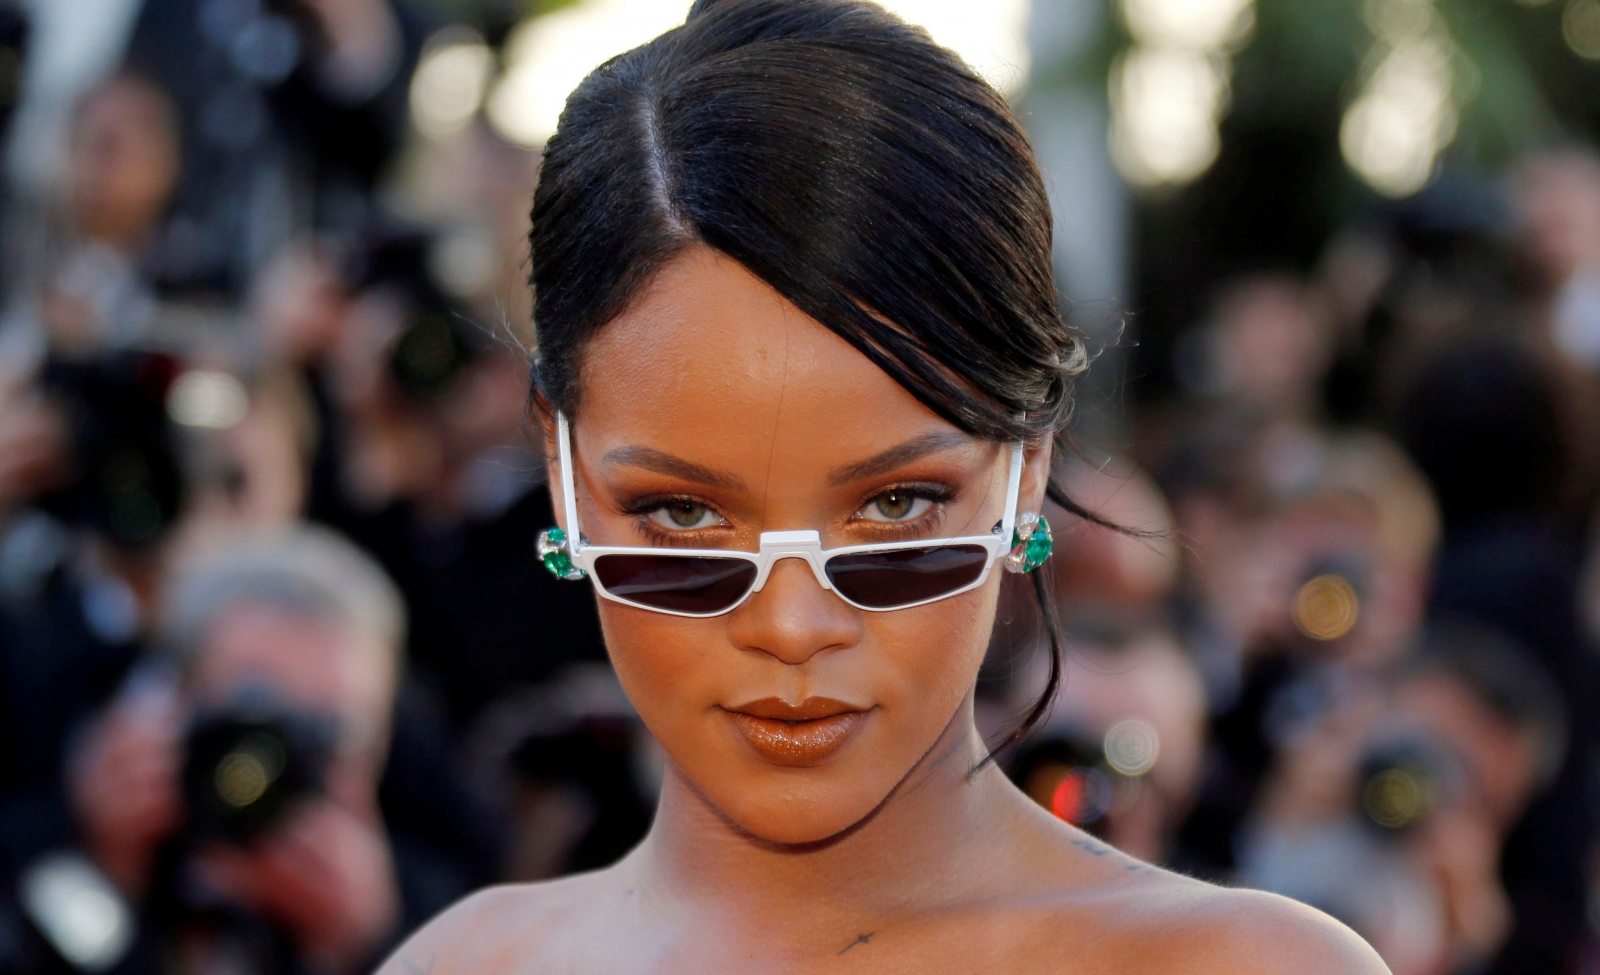 Rihanna vacations in Spain with new mystery man